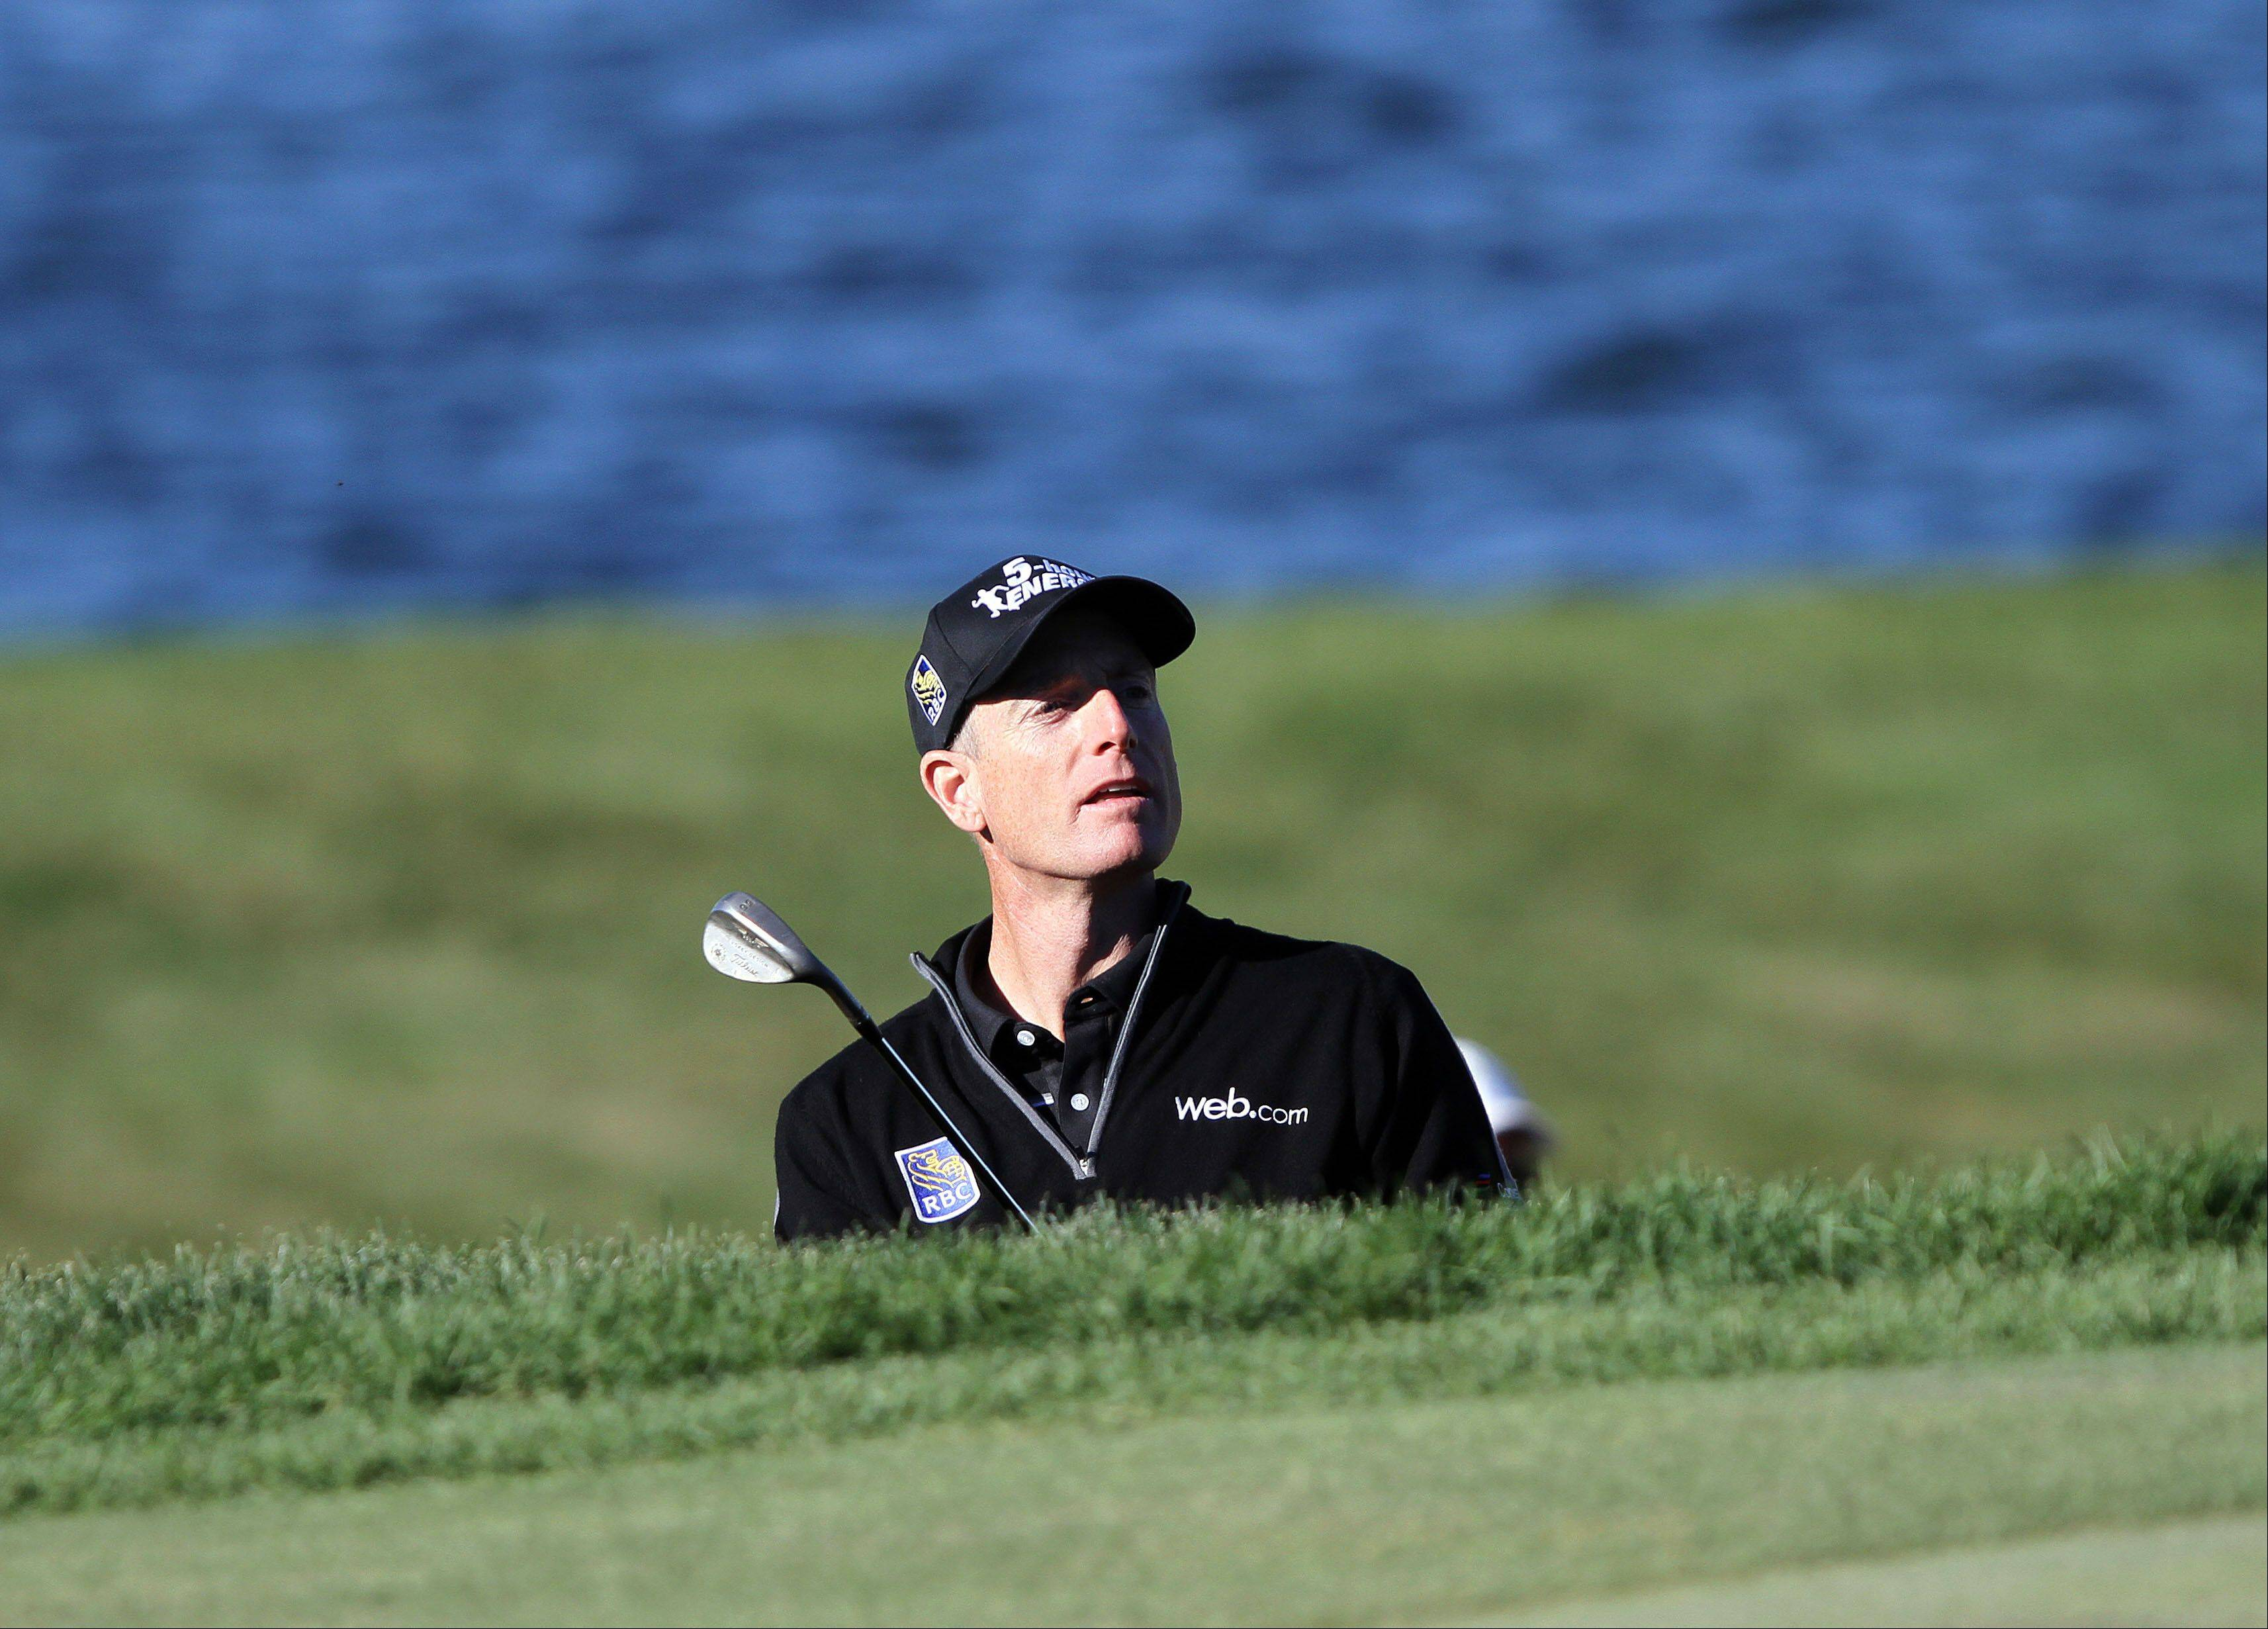 Steve Lundy/slundy@dailyherald.comJim Furyk watches his chip shot to the 8th green during the second-round of the BMW Championship at Conway Farms Golf Club in Lake Forest Friday. Furyk shot the elusive 59.